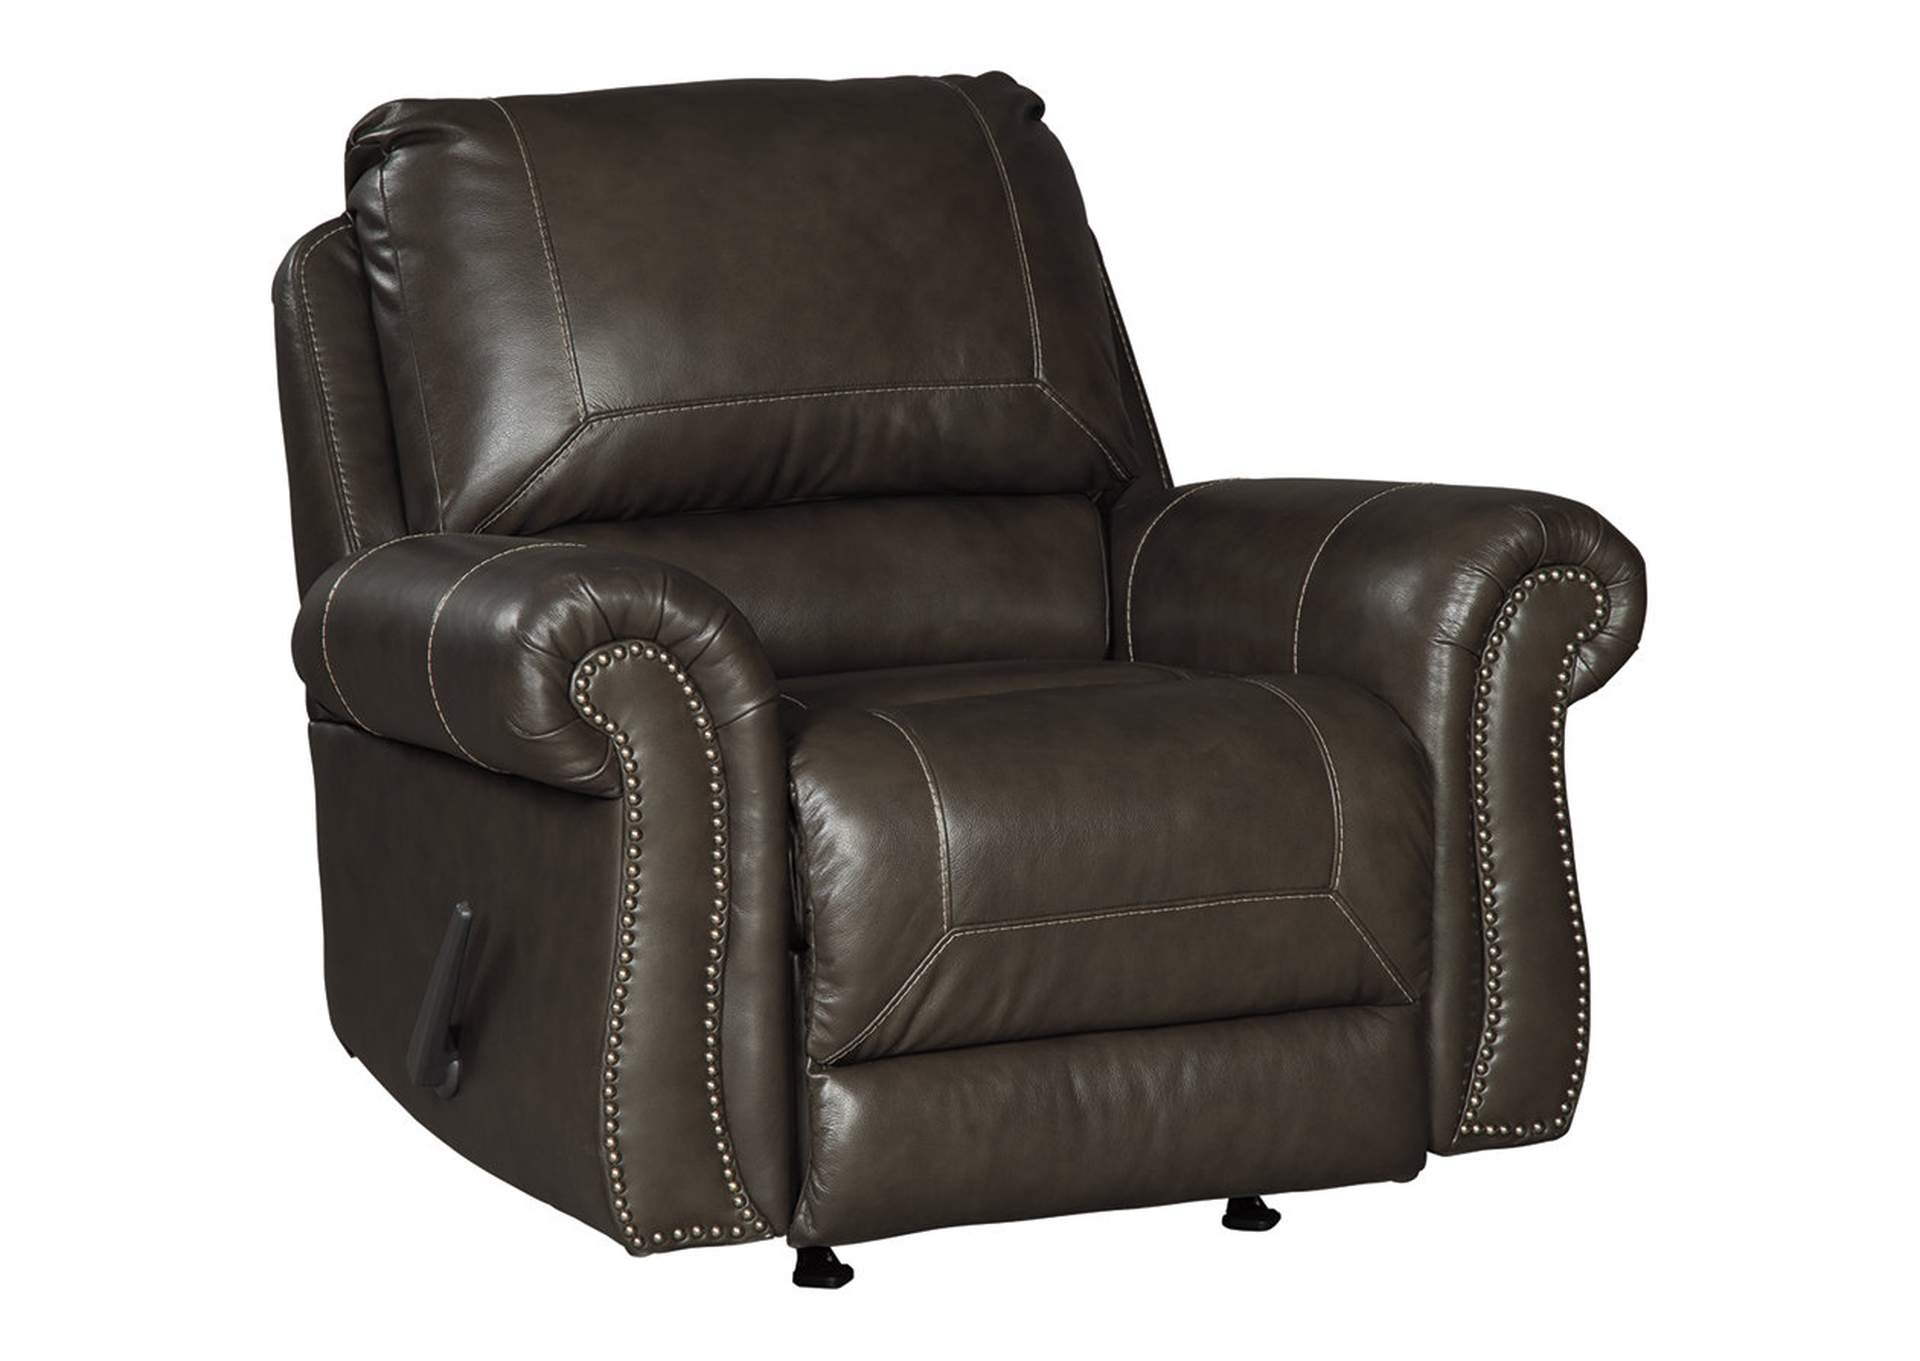 Lawthorn Slate Recliner,Signature Design By Ashley